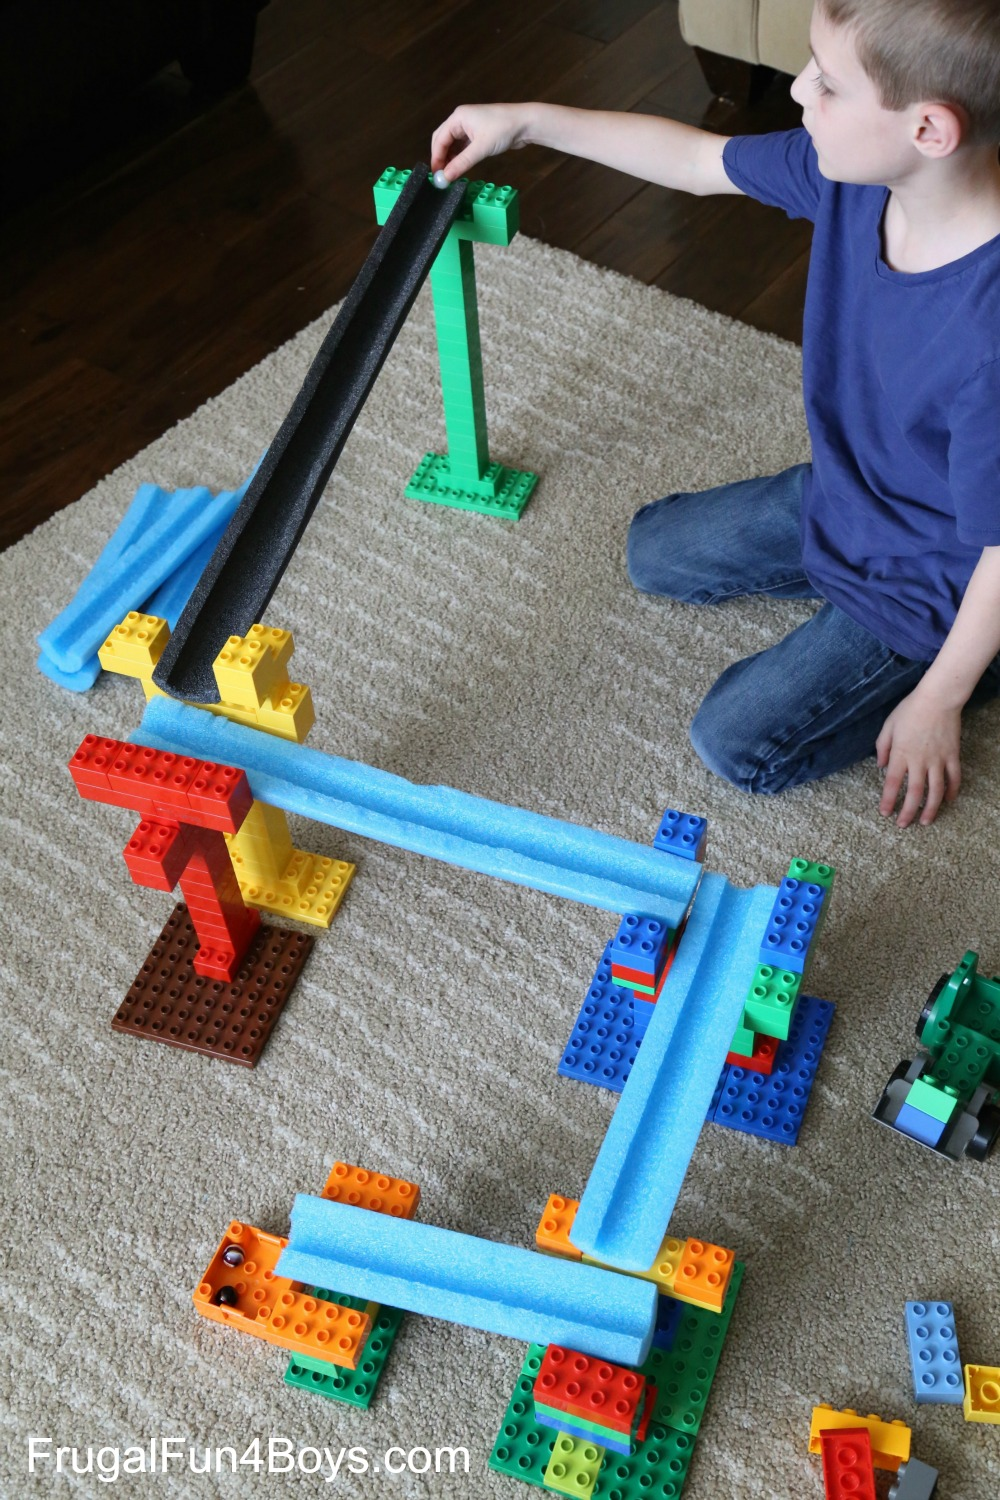 STEM Building Challenge for Kids: Create a LEGO Duplo and Pool Noodle Marble Run